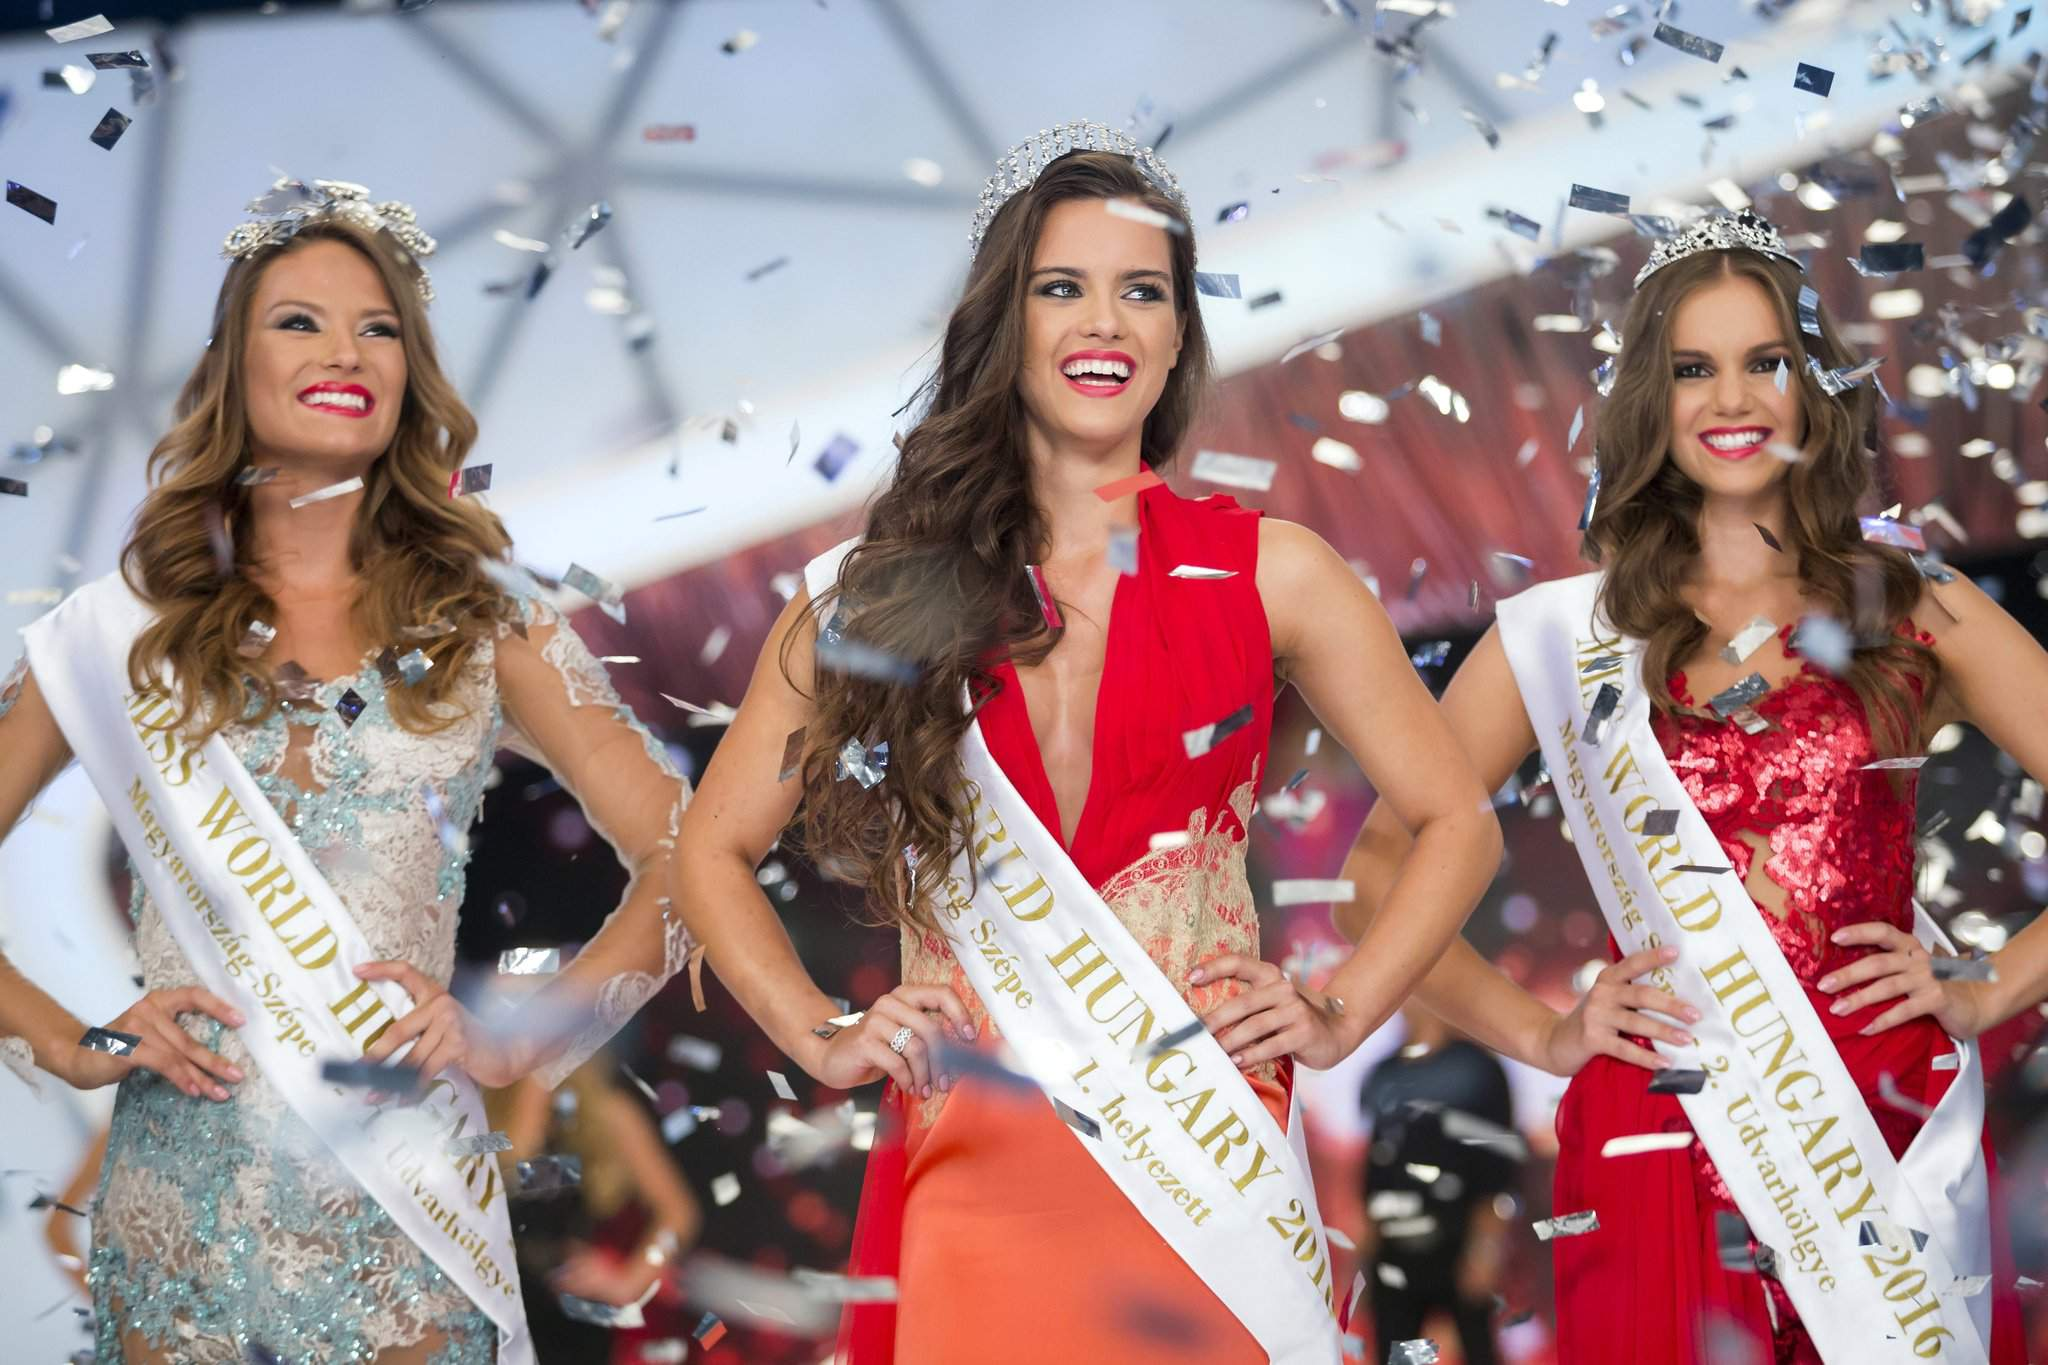 Hungary's most beautiful women chosen at the Miss Universe Hungary – Photo gallery